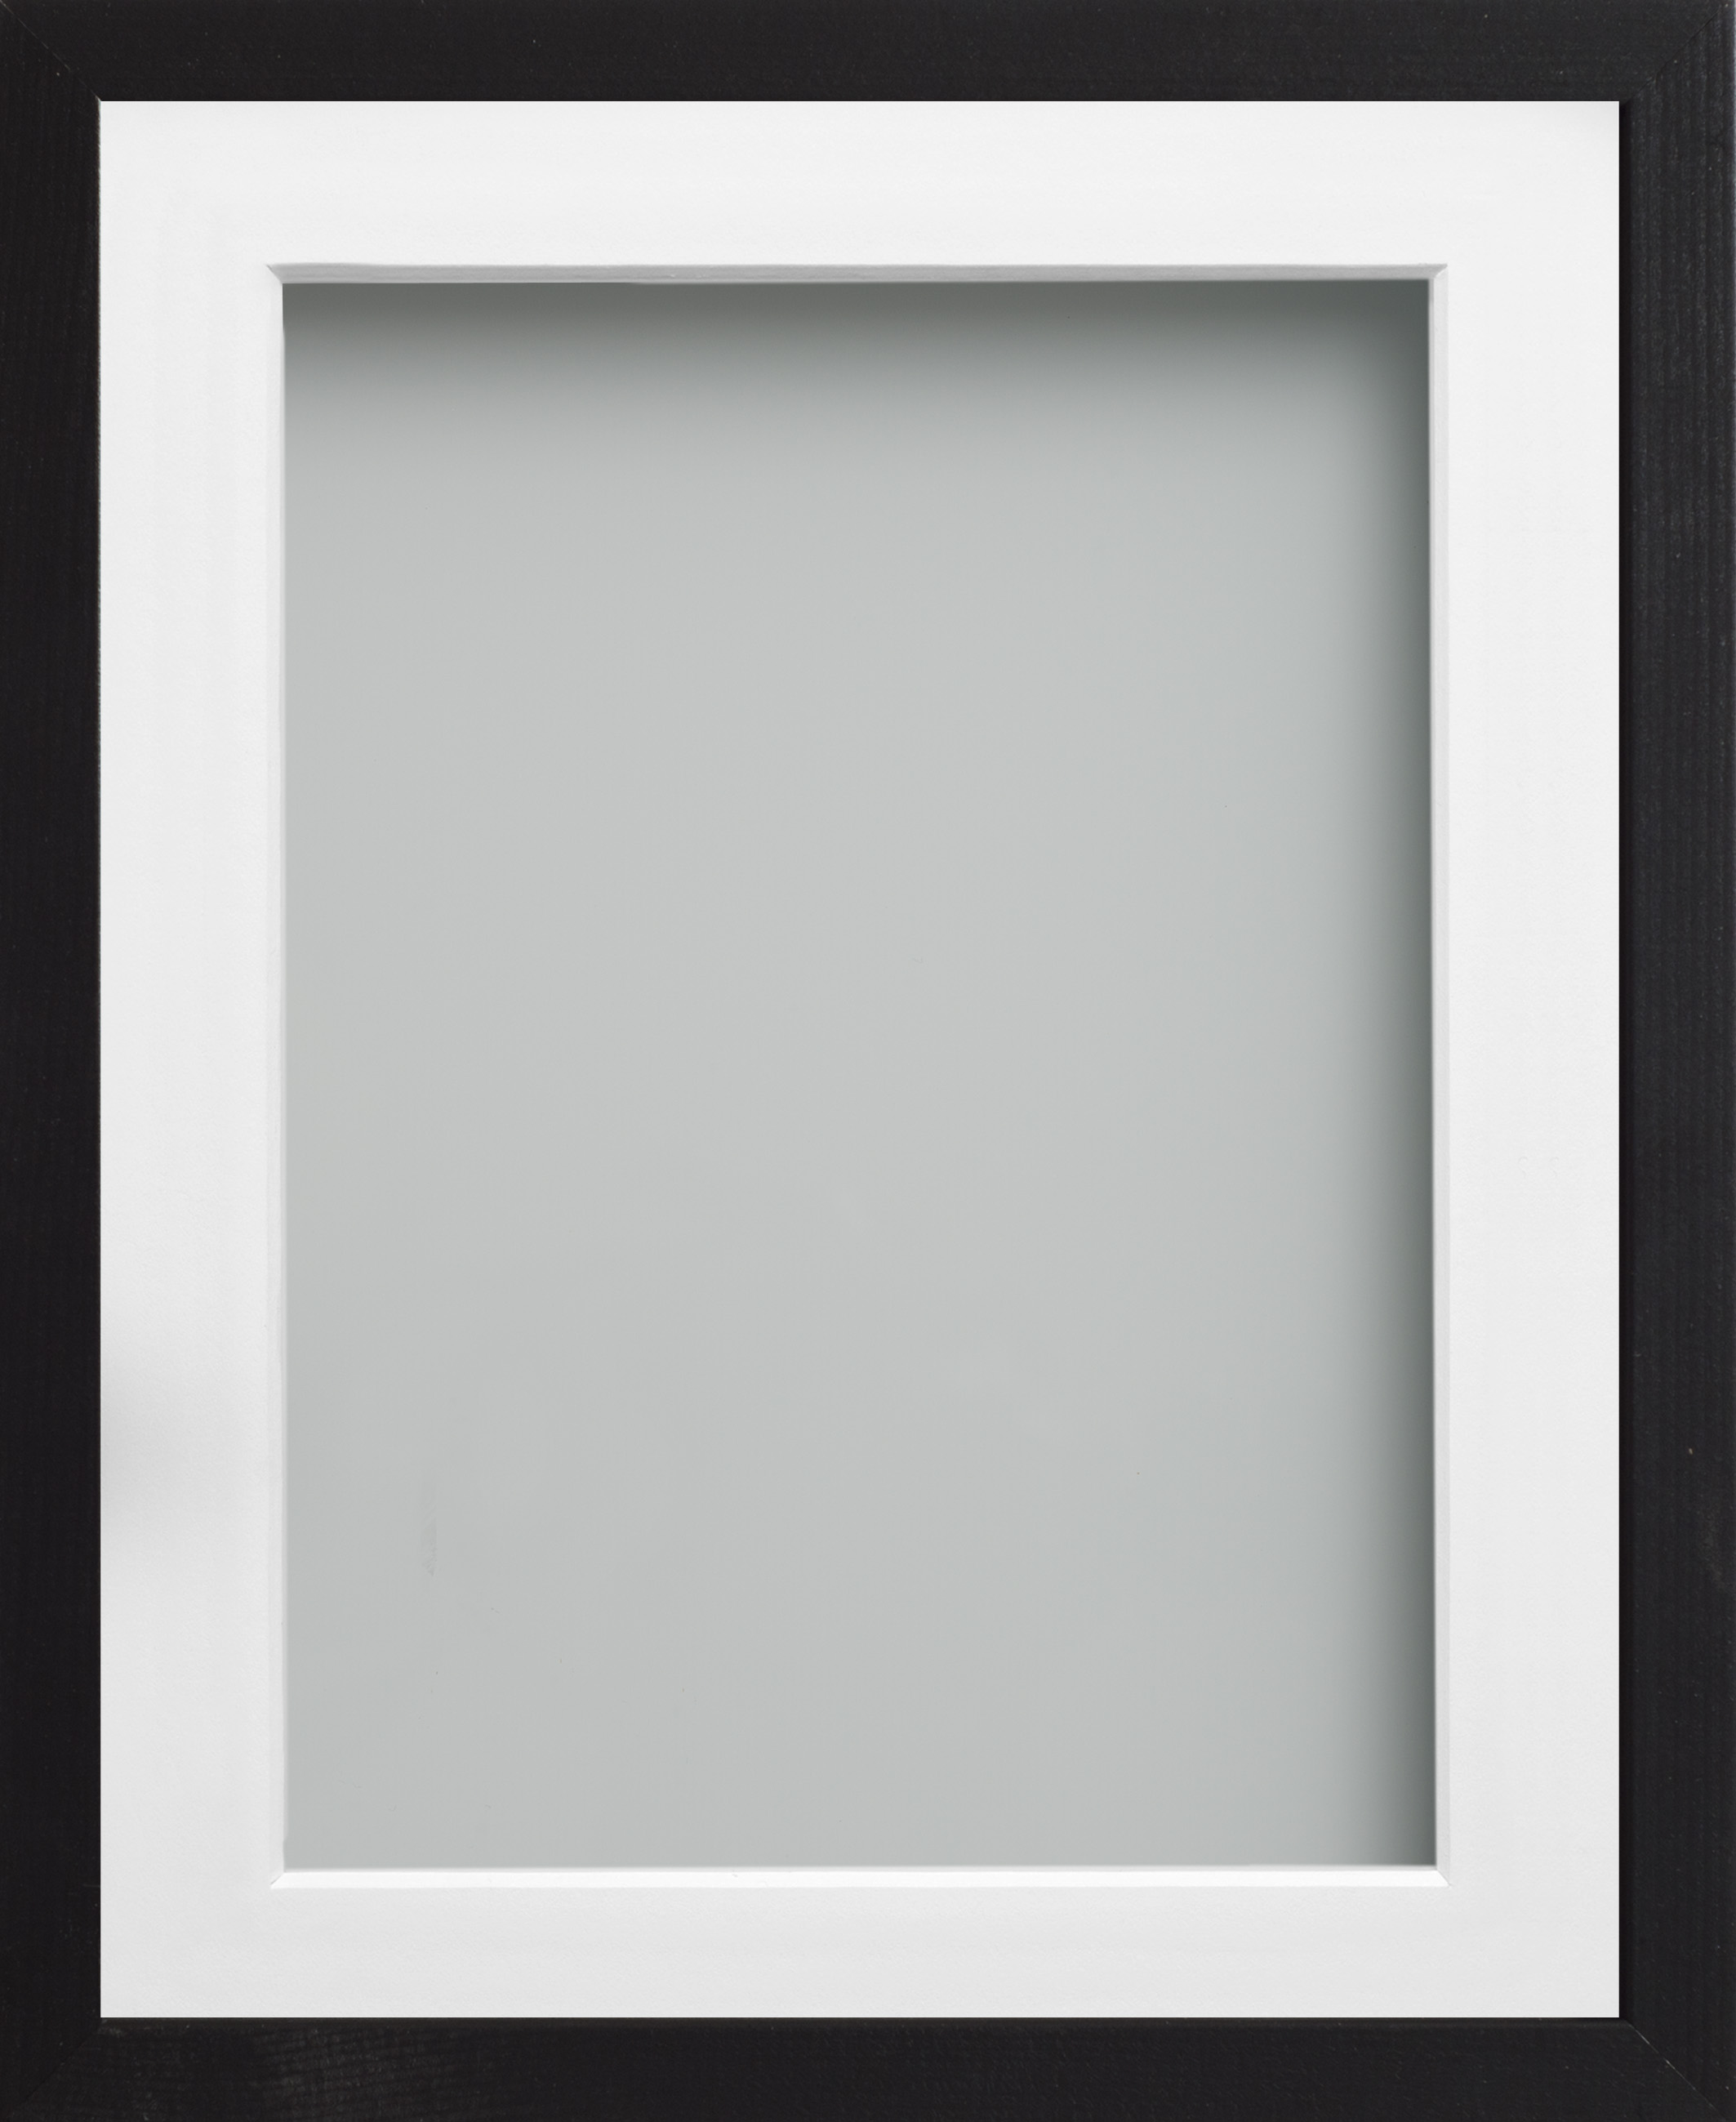 Frame Company Webber Range Black Wooden Picture Photo Frames With